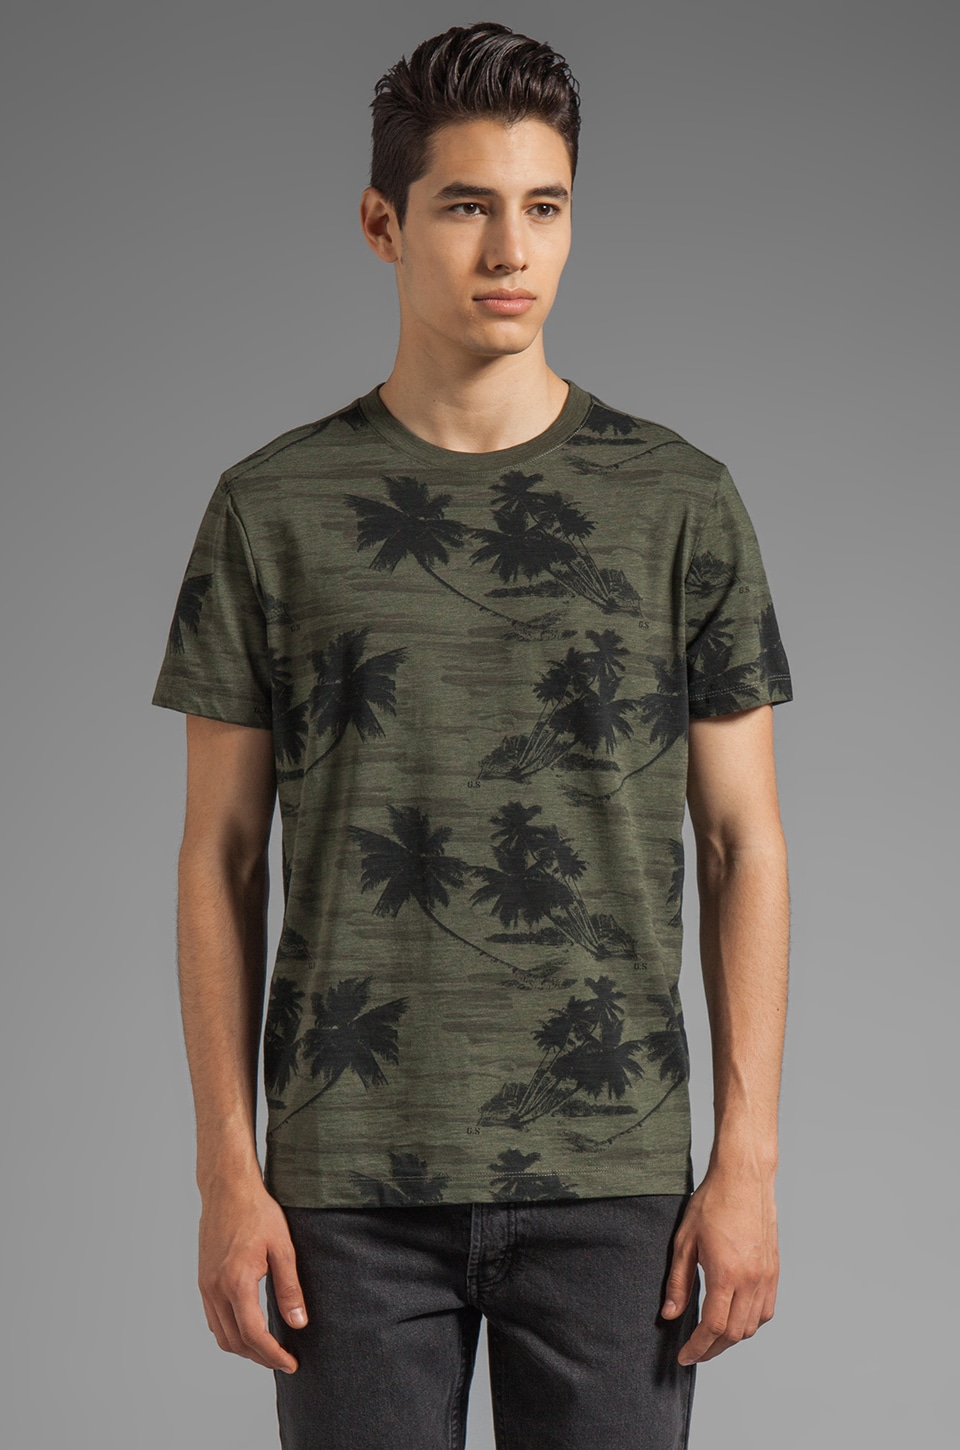 G-Star Camo R Short Sleeve Tee in Combat